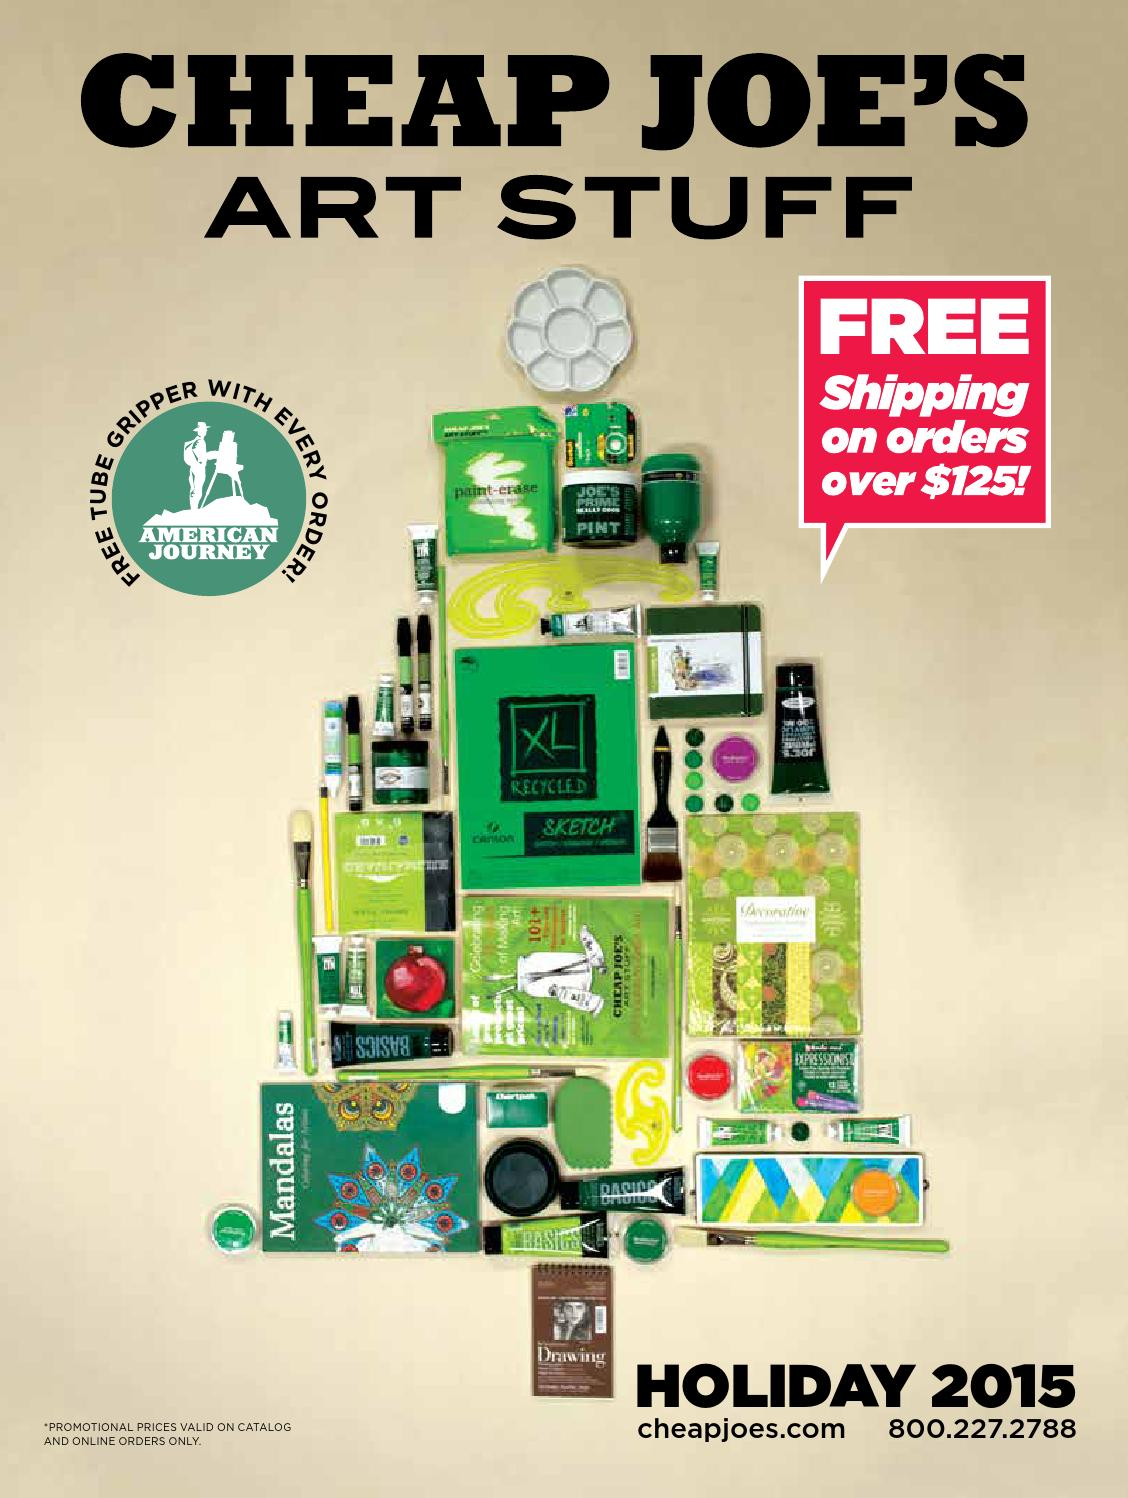 Cheap Joe's Art Stuff offers discount prices on art supplies and craft supplies. Shop our enormous collection of artist materials online, by phone or by mail for .